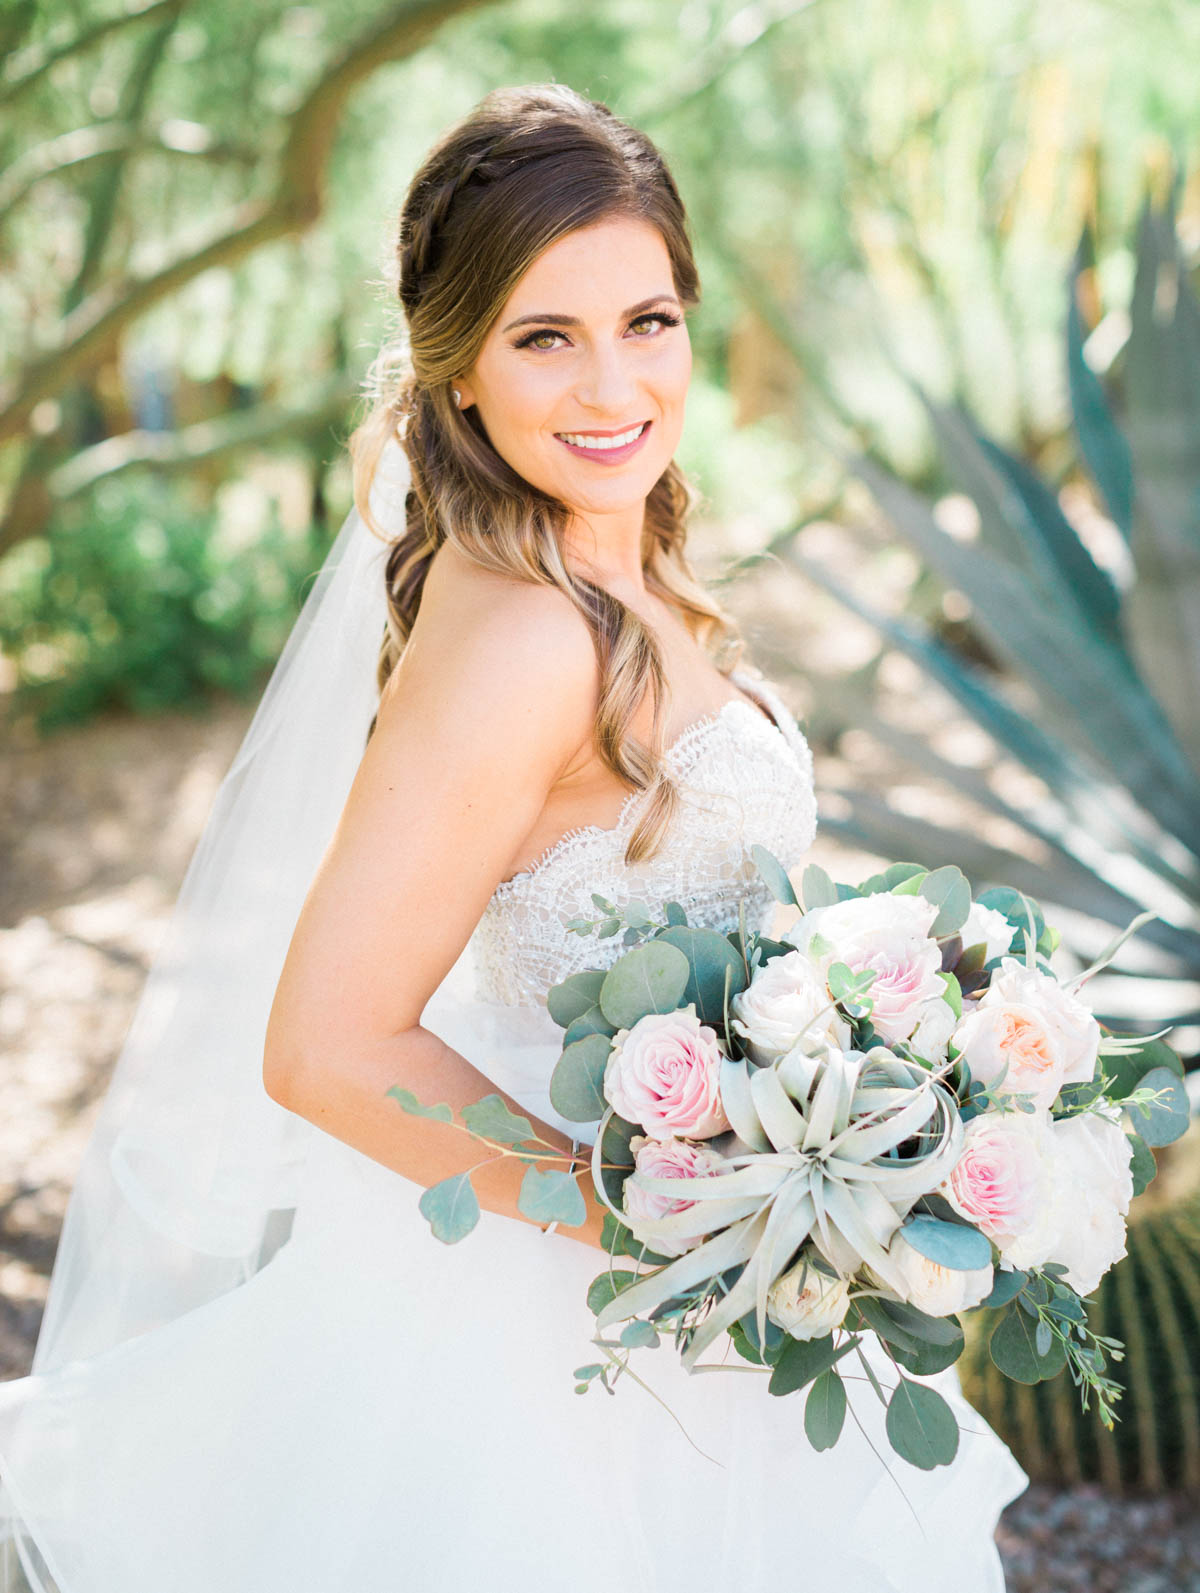 Beautiful bride captured by Tucson Wedding Photographers Betsy & John